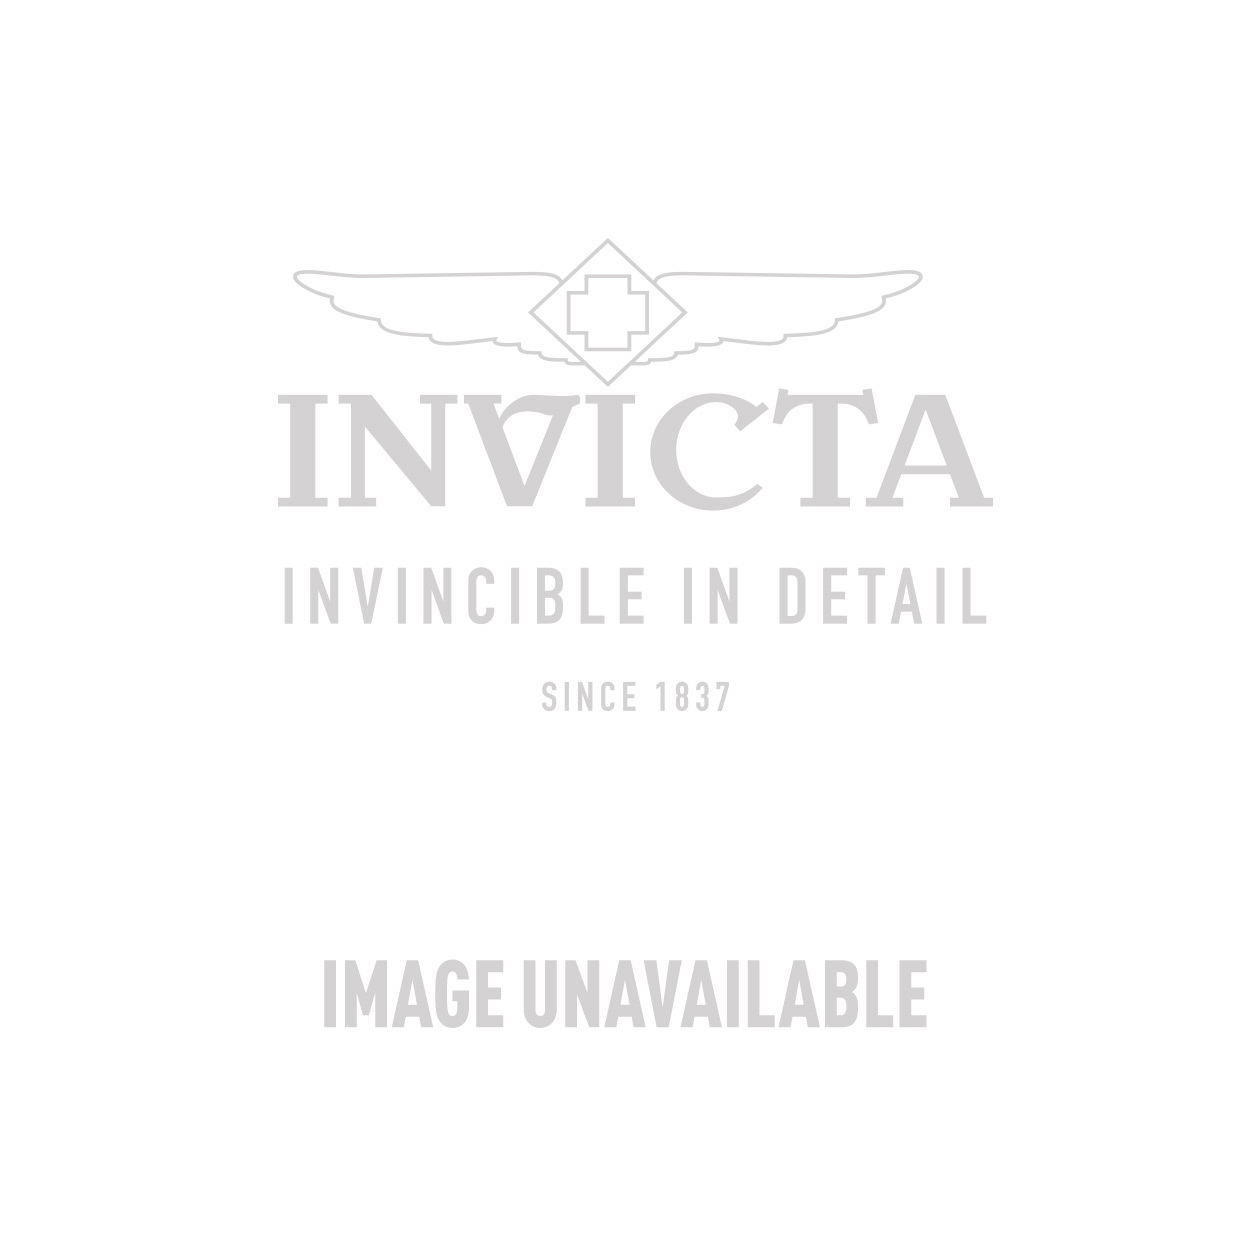 Invicta Reserve Swiss Made Quartz Watch - Gold case with Gold, White tone Stainless Steel, Polyurethane band - Model 0170